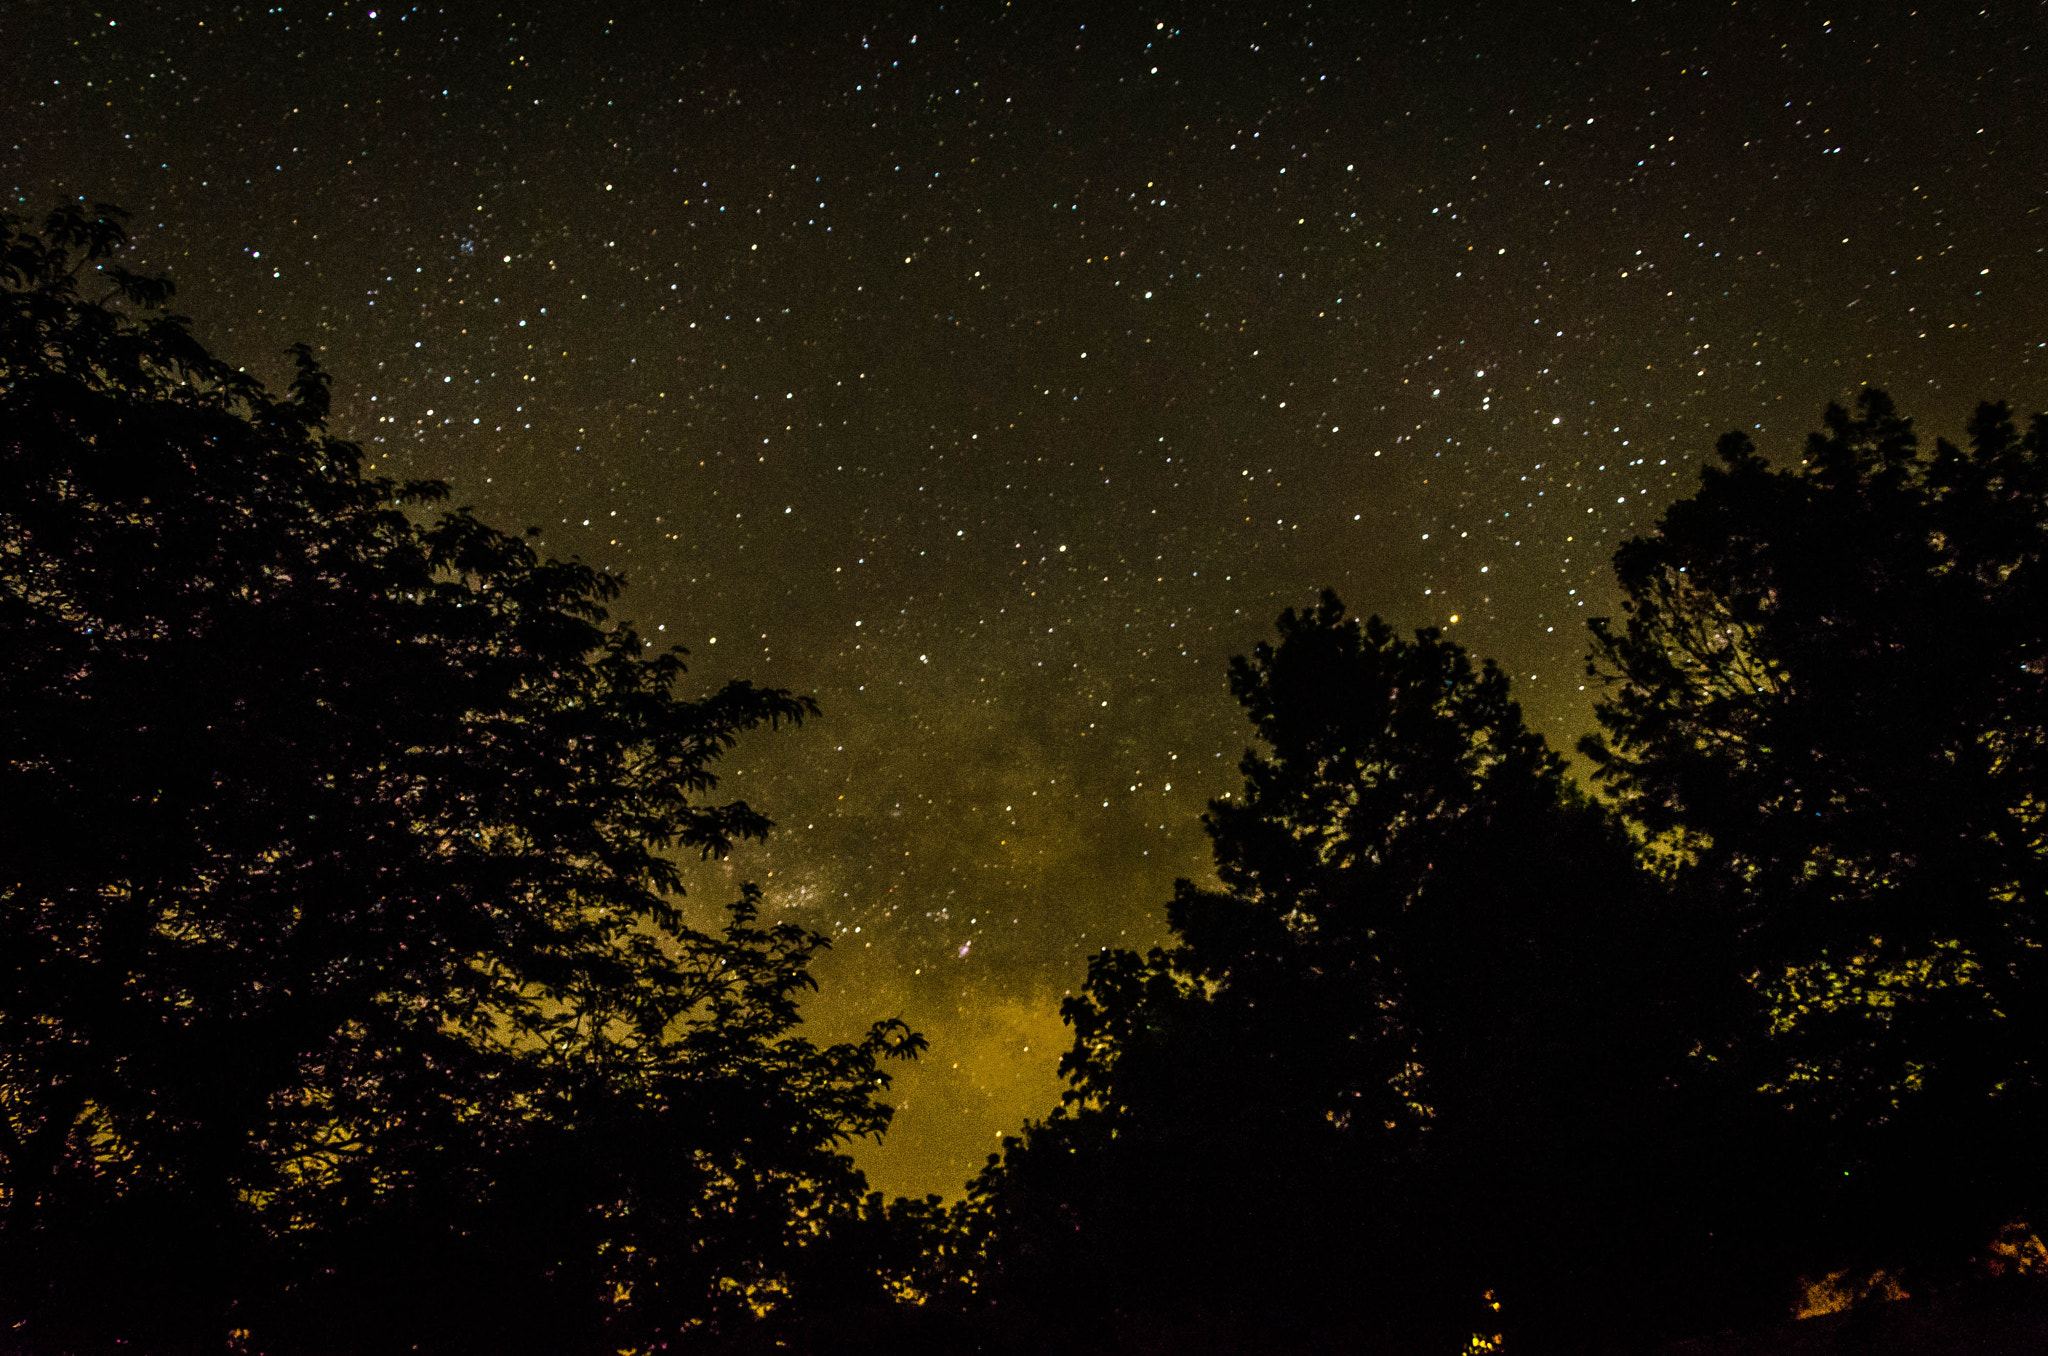 Photograph Looking for the Milky Way by Jerry Dean on 500px